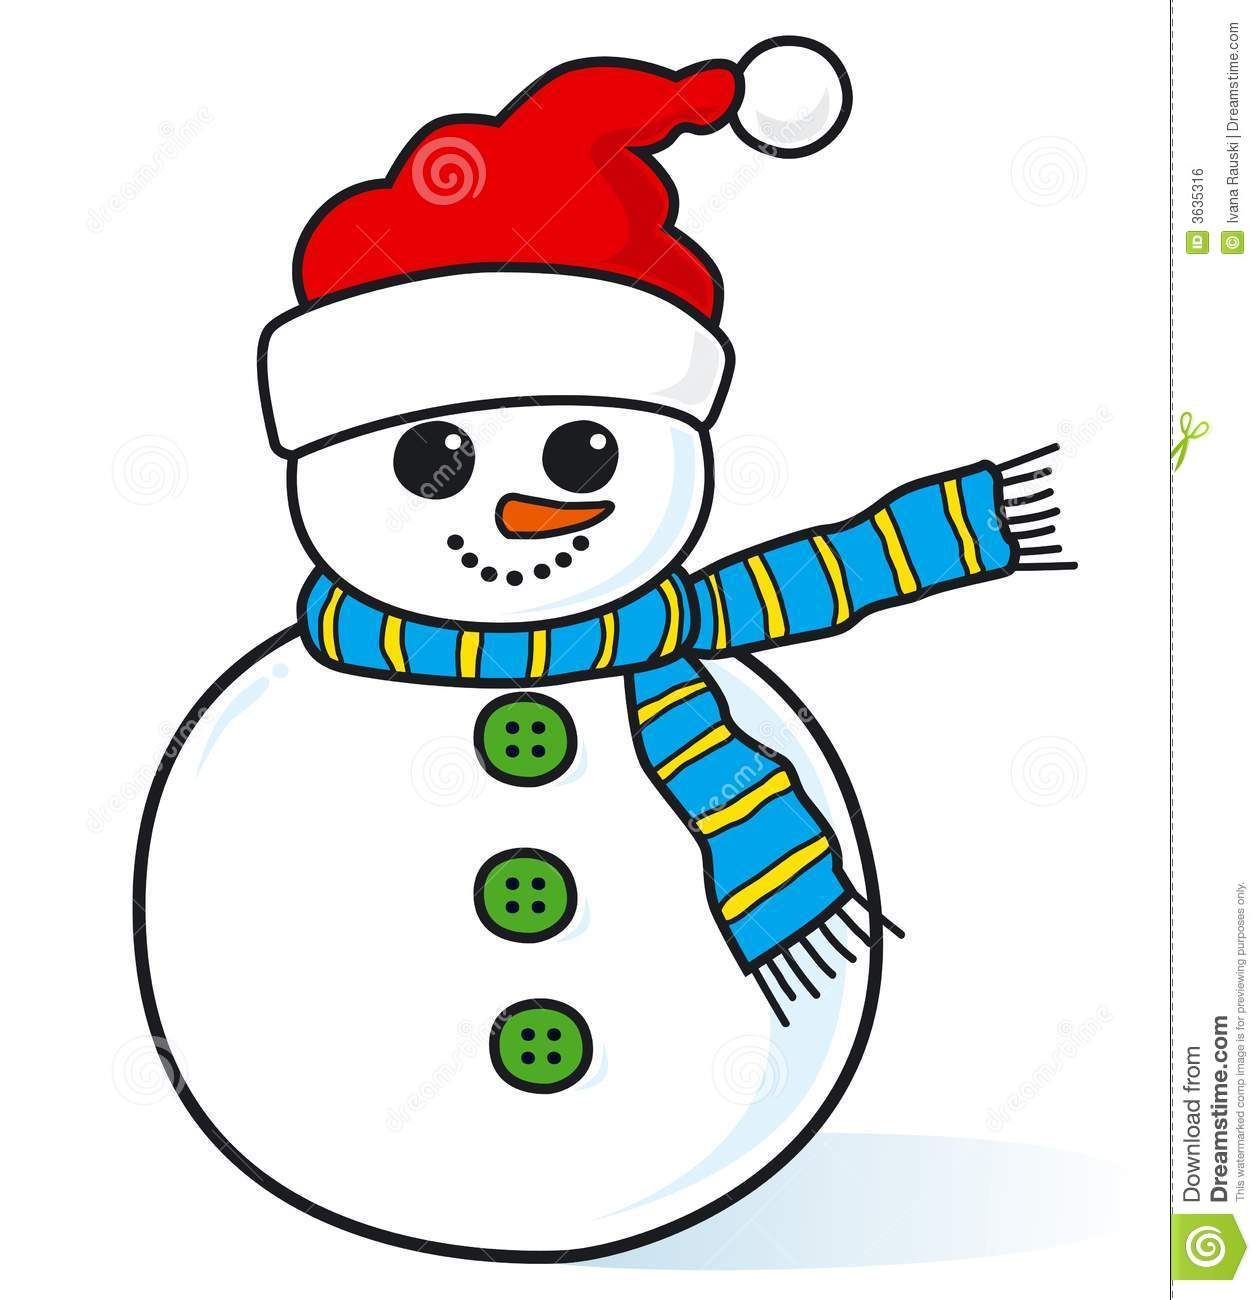 1260x1300 Cute Little Snowman Royalty Free Stock Image Image 6 Image